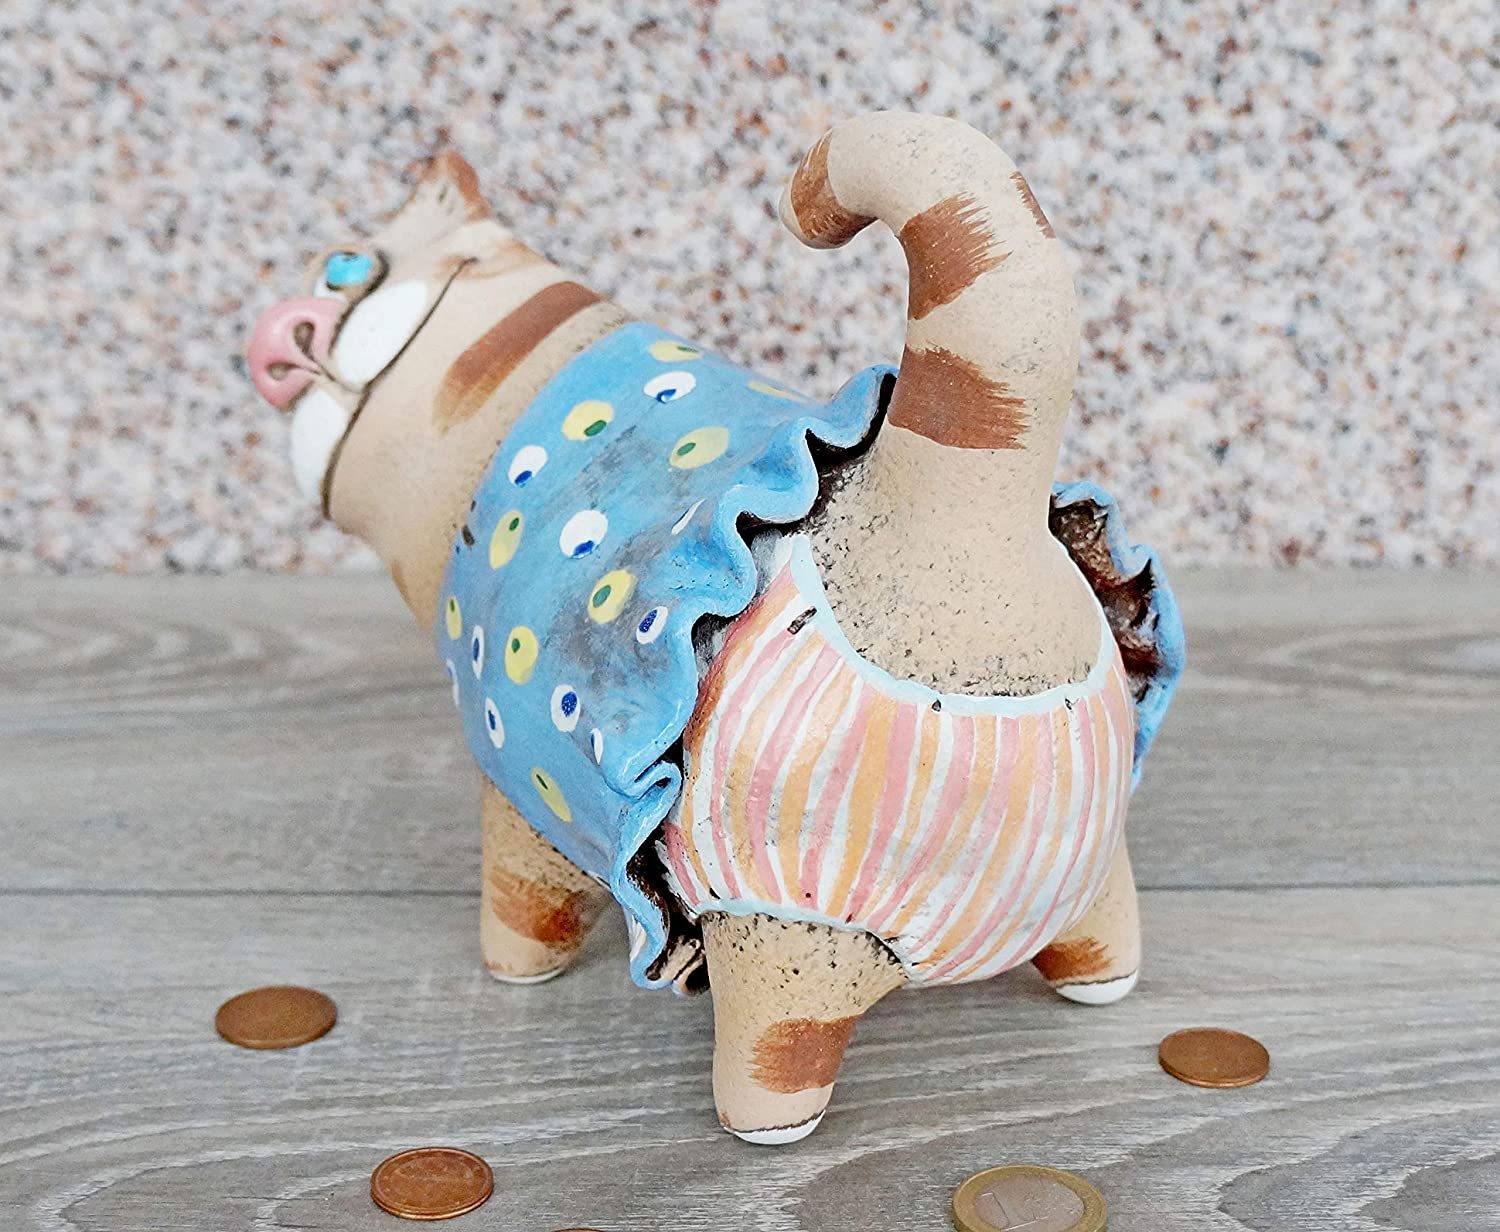 One of kind Handmade Piggy Bank Funny Cat ceramic sculpture Coin bank Gift birthday wedding